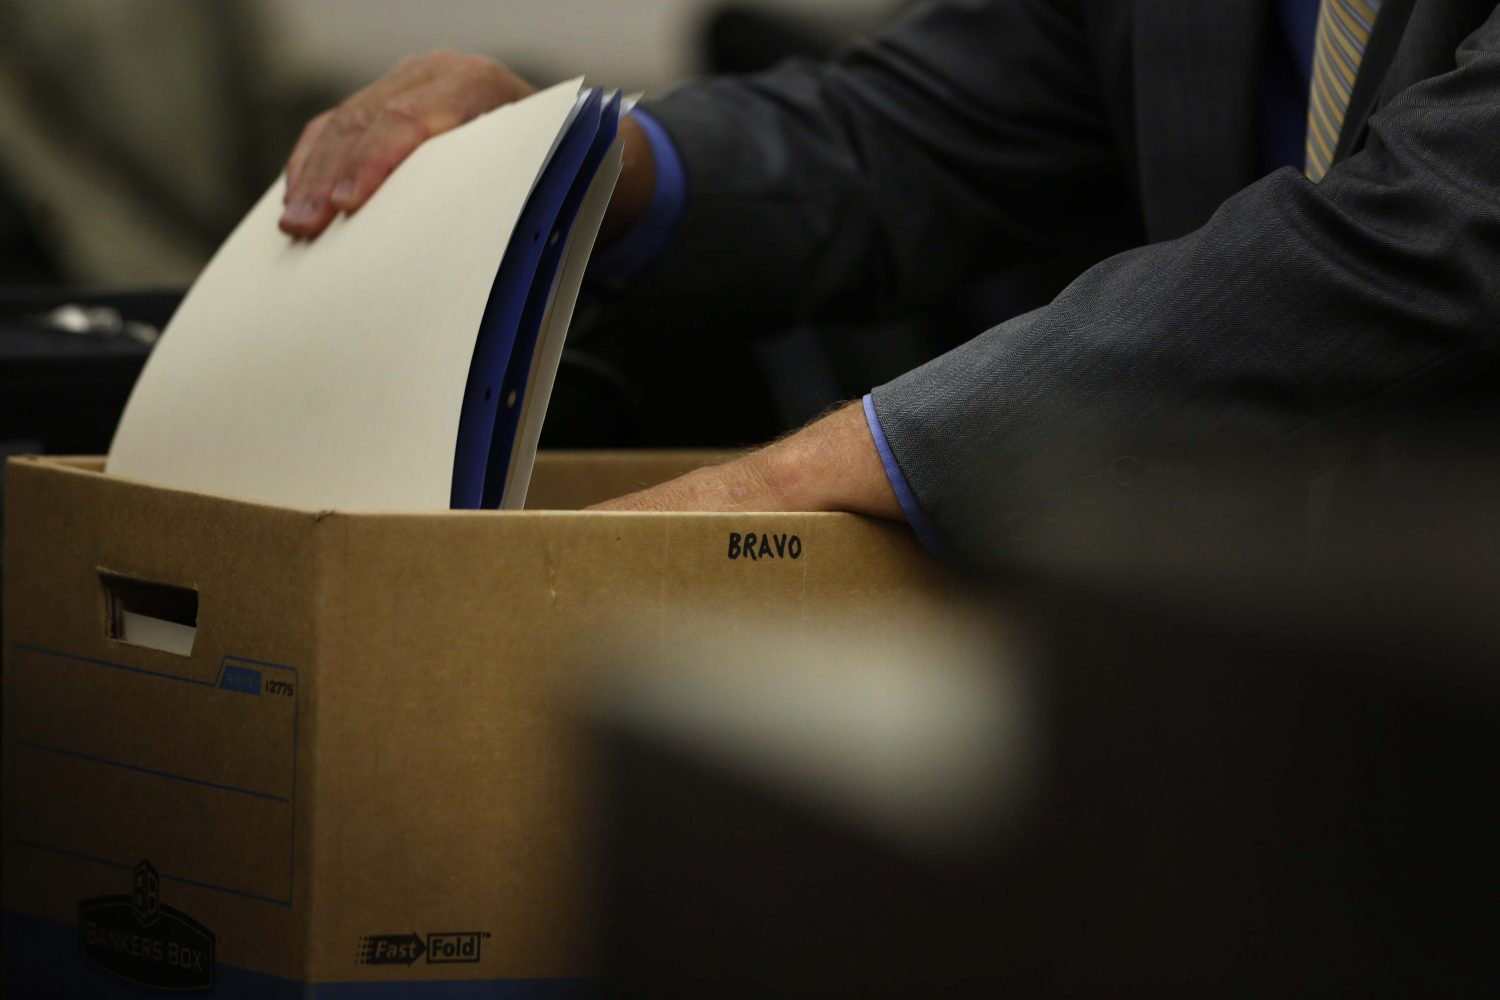 Pedro Bravo's defense attorney Michael Ruppert removes a folder from a box marked Bravo during day 3 of Bravo's murder trial in courtroom 1B of the Alachua County Criminal Justice Center Thursday, August 7, 2014.  Bravo is accused of killing University of Florida student Christian Aguilar.  (Doug Finger/The Gainesville Sun/Pool)